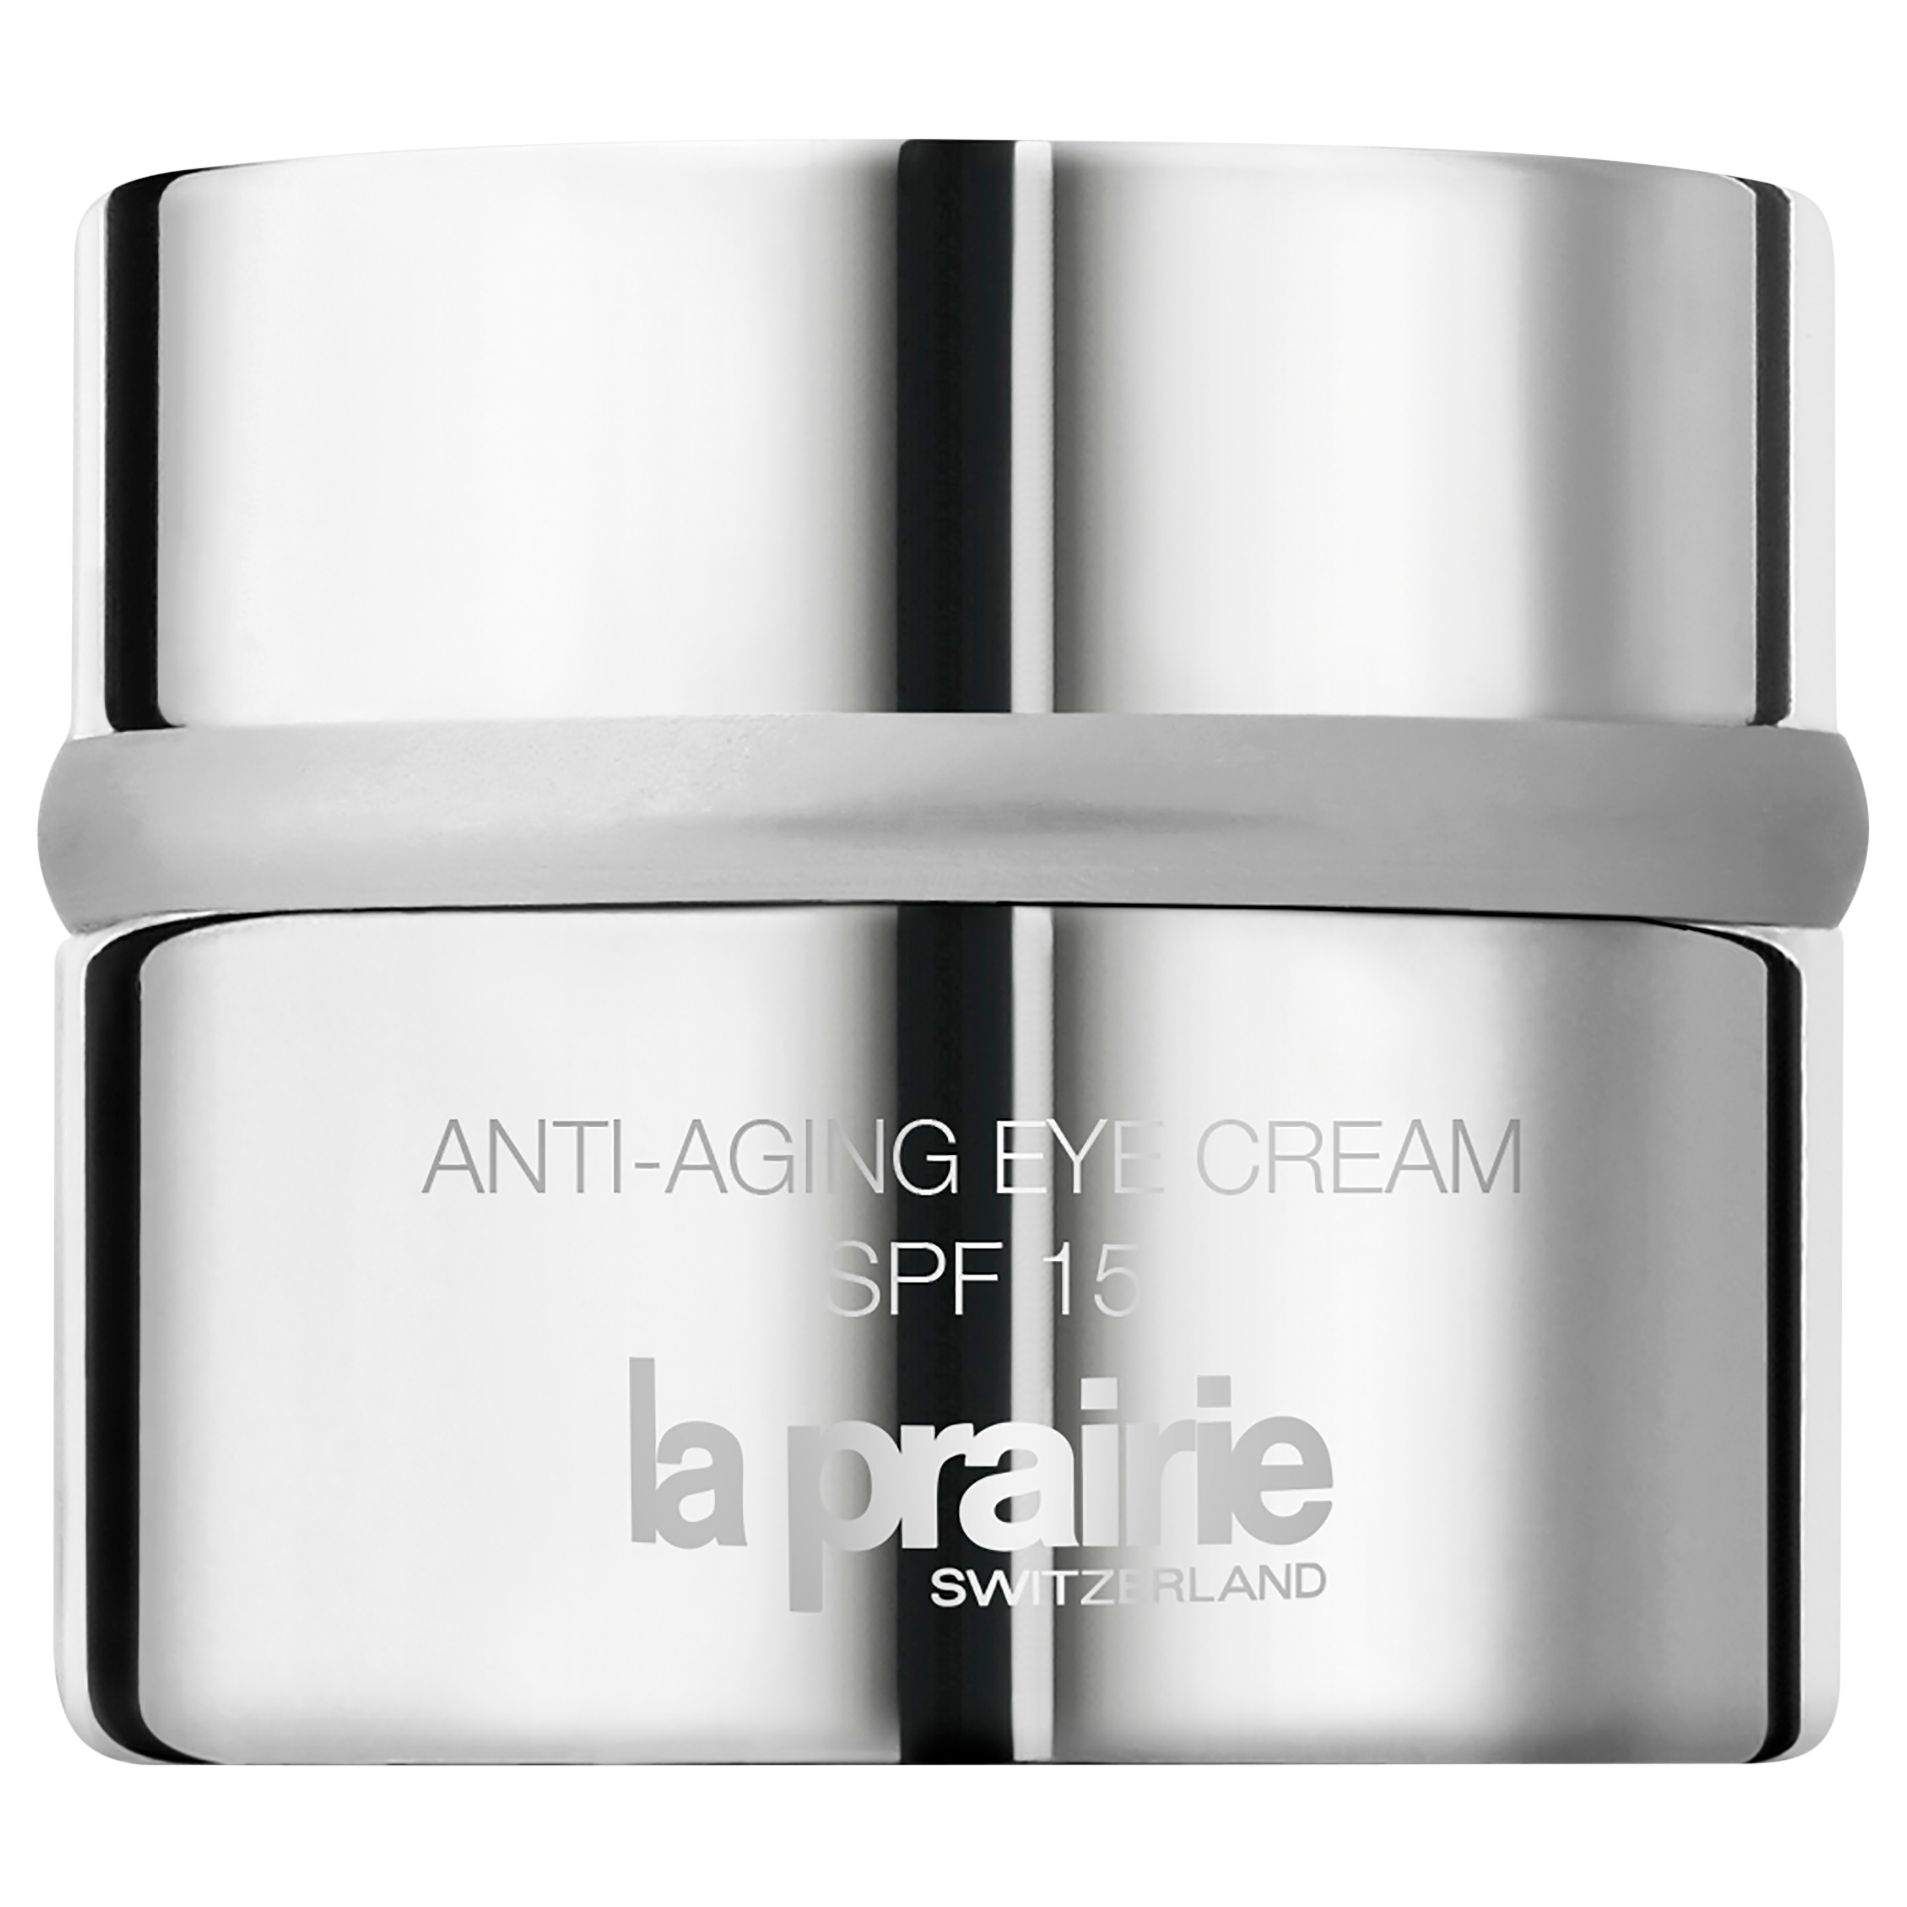 La Prairie La Prairie Anti-Aging Eye Cream SPF15 A Cellular Protection Complex, 15ml